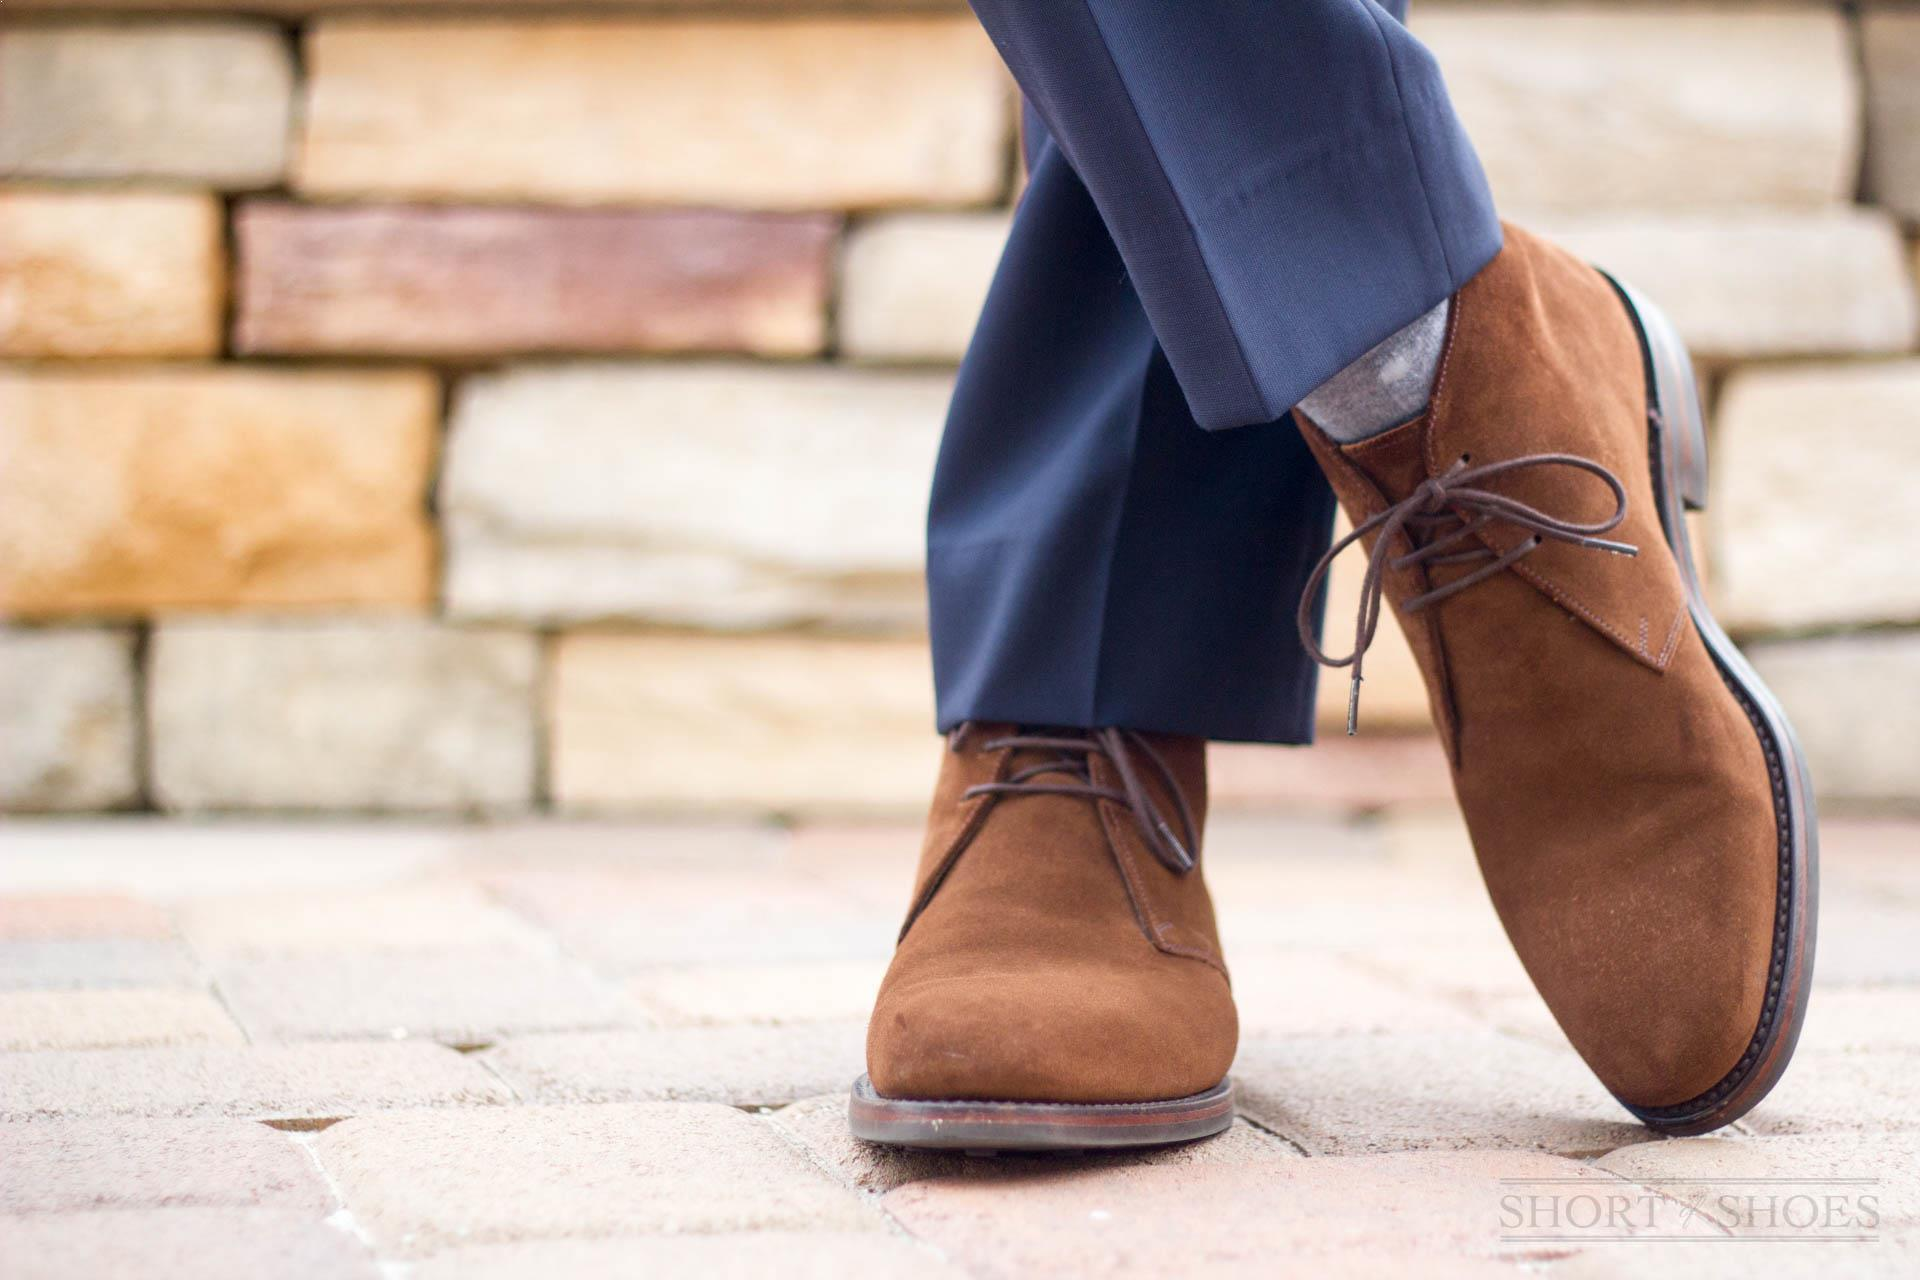 Loake Shoes Review - Kempton Suede